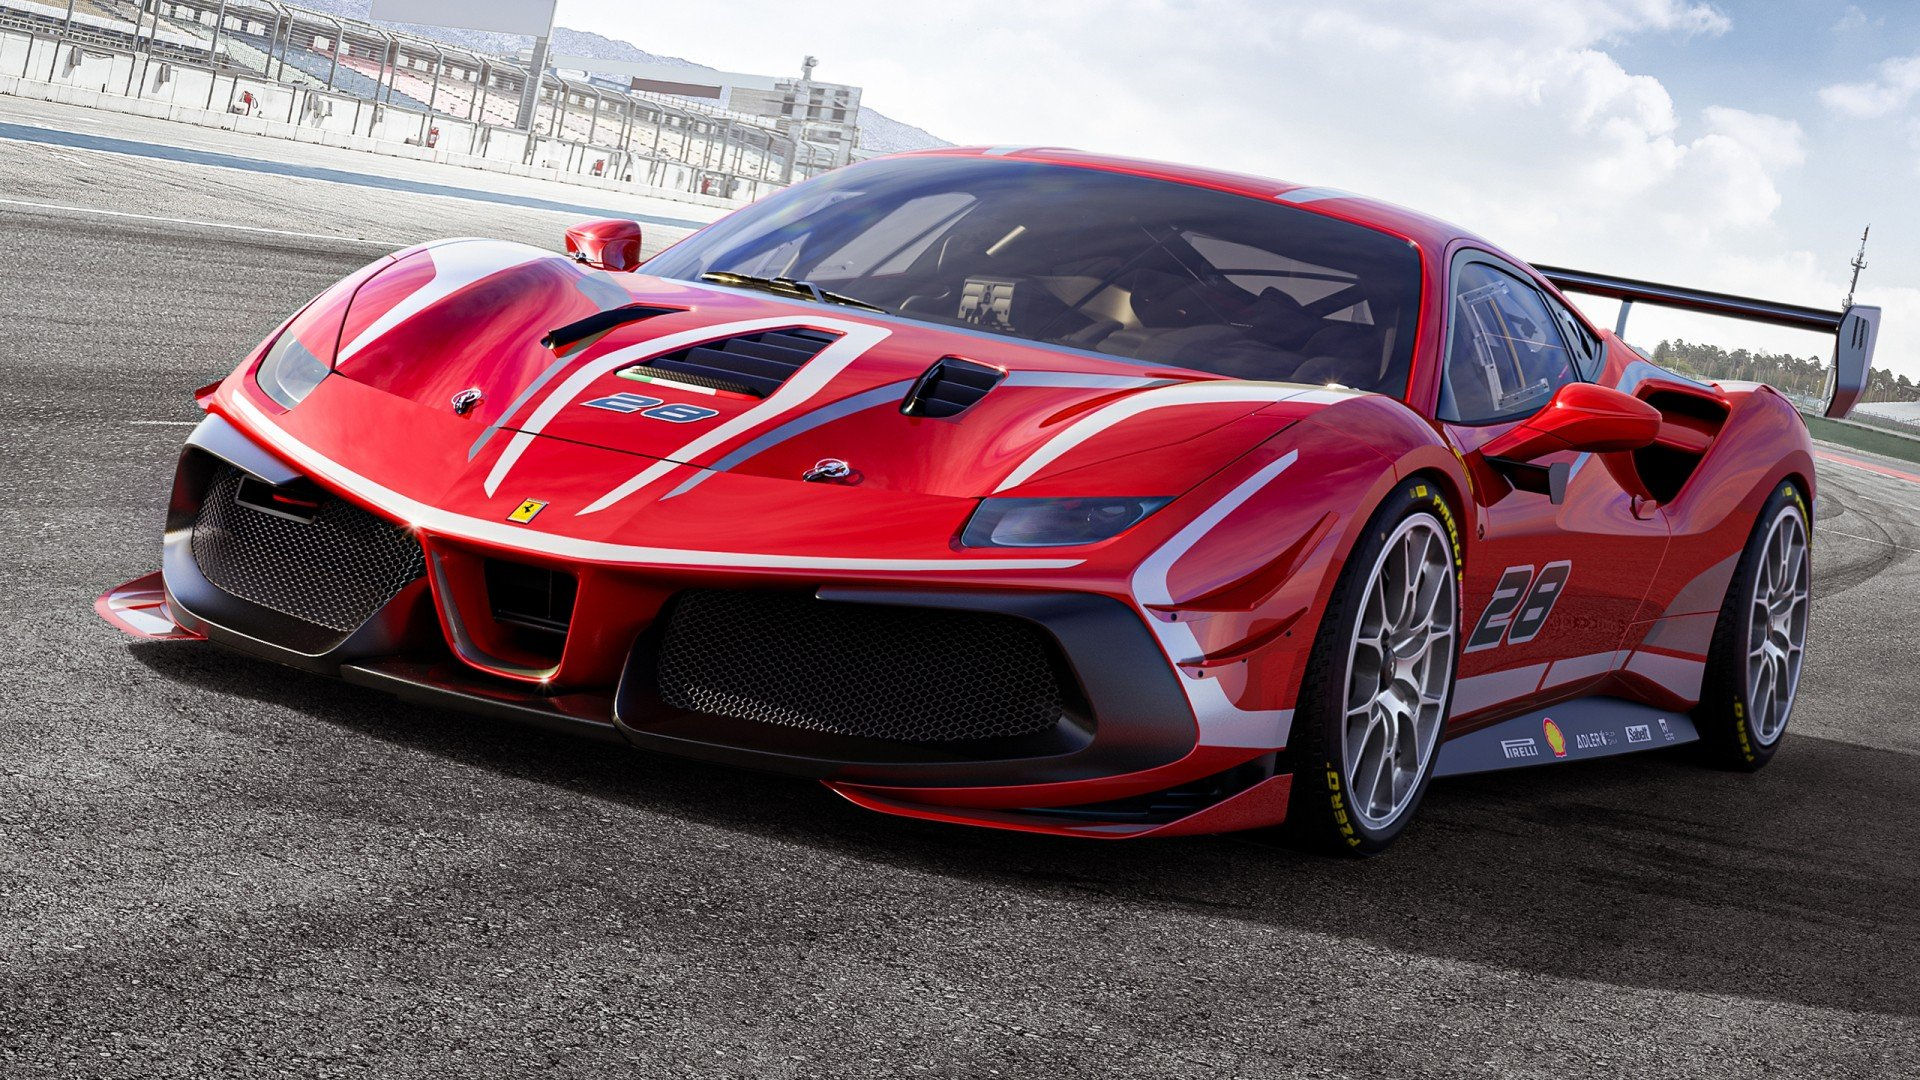 Ferrari 488 Challenge Evo 2020 2 Wallpaper HD Car Wallpapers 1920x1080